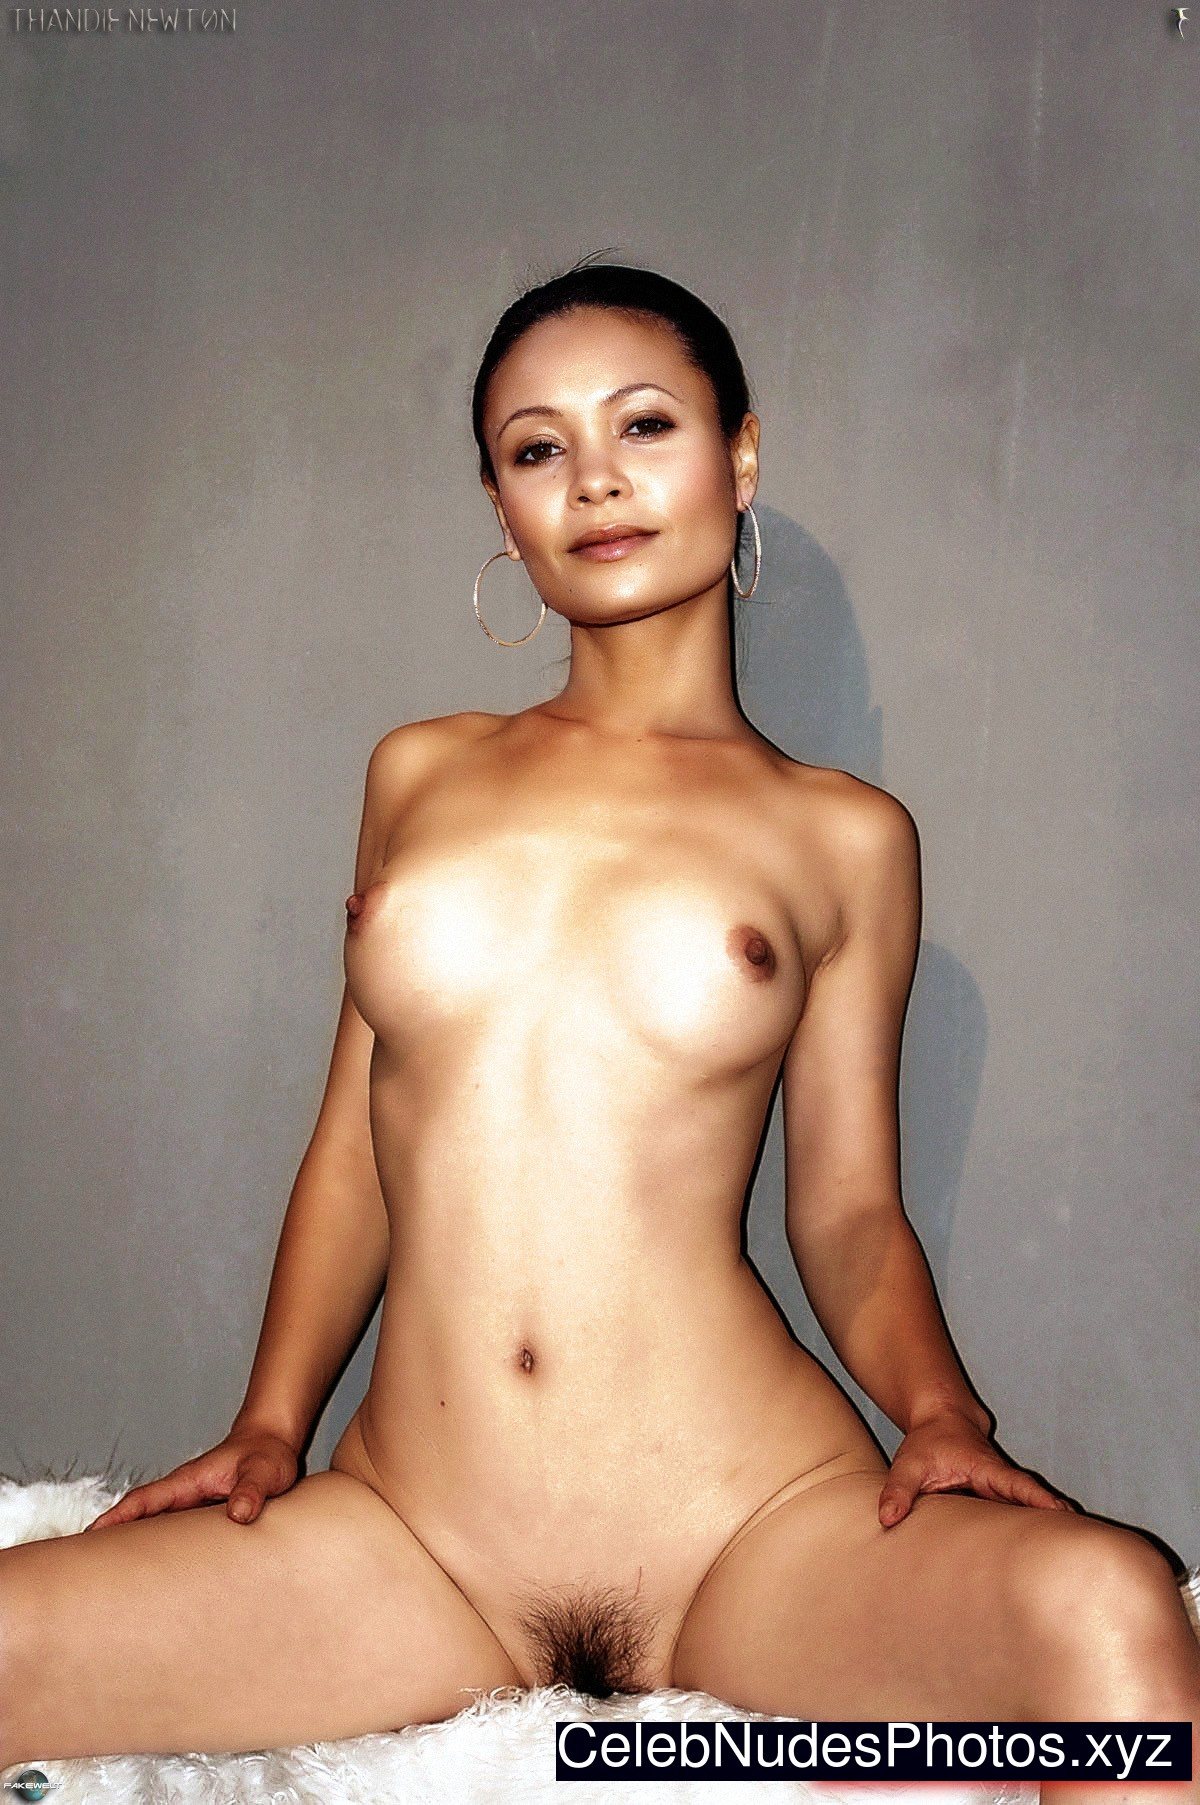 Thandie Newton Naked Celebrity sexy 2